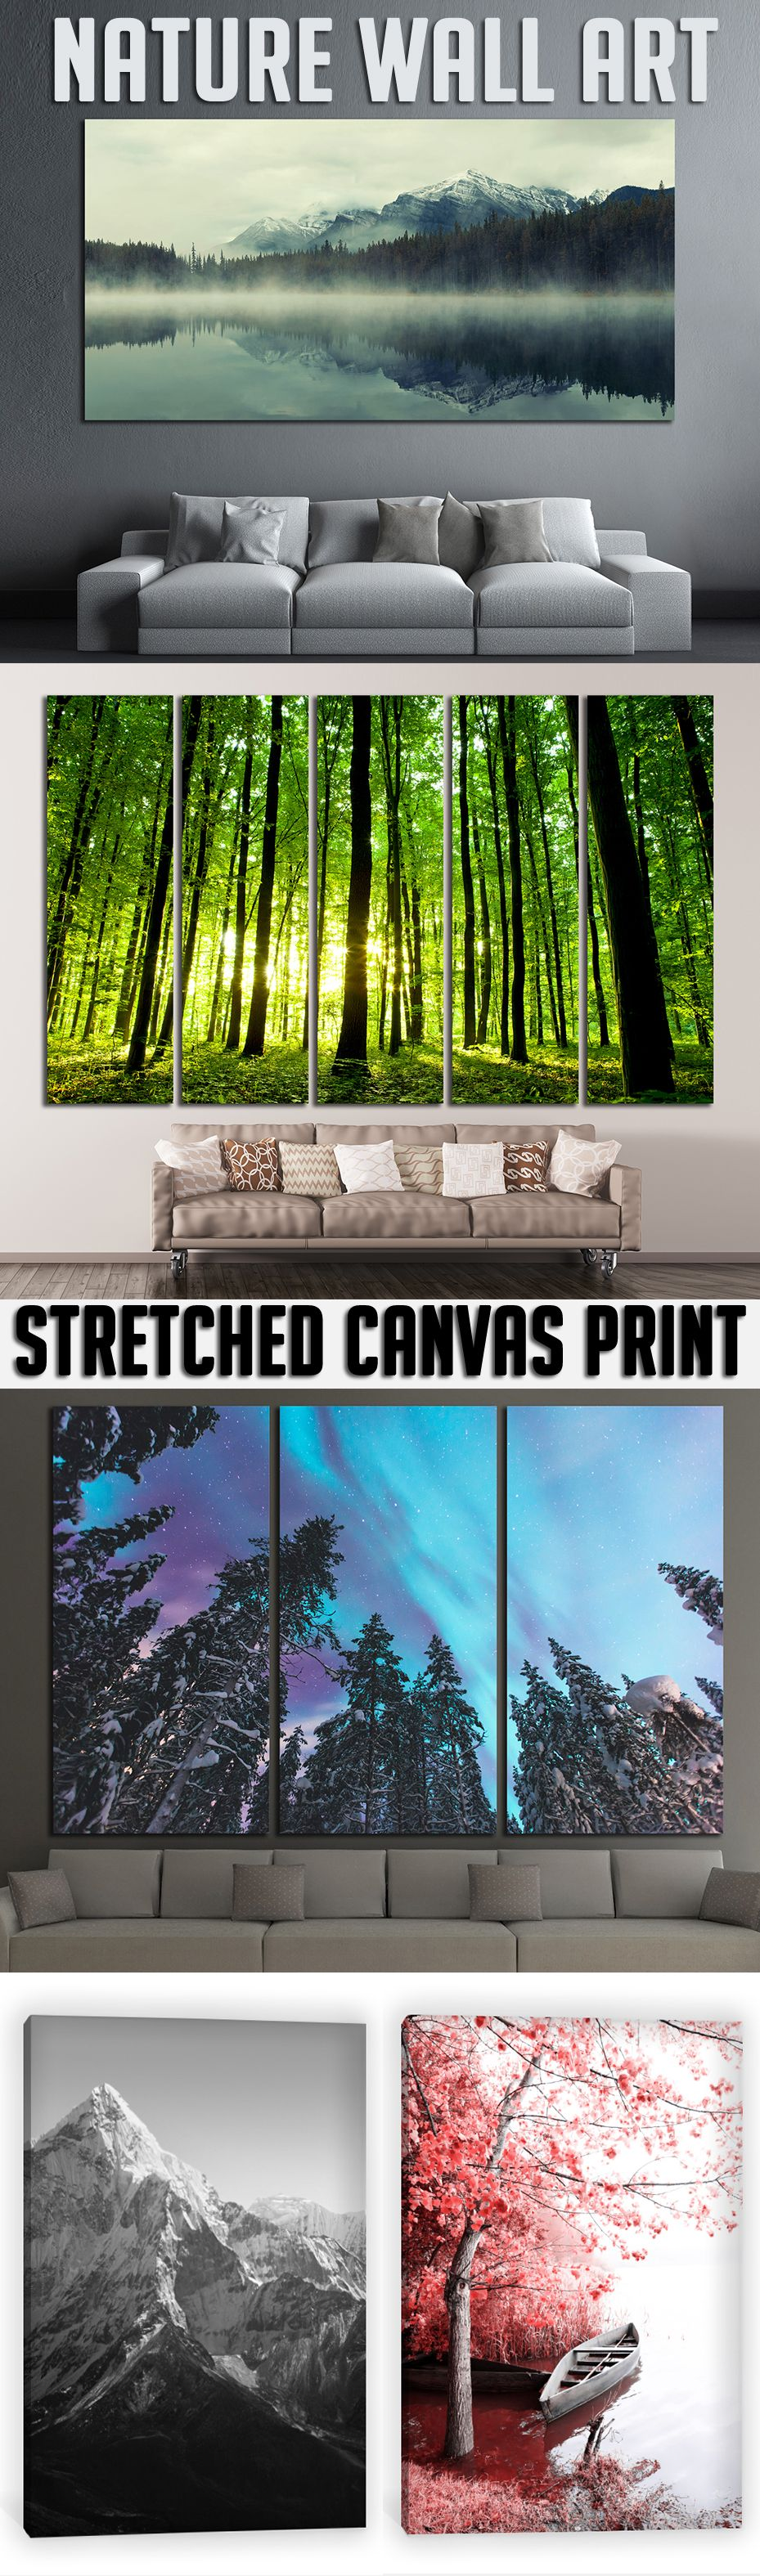 Extra large nature wall art for home u office decoration wall